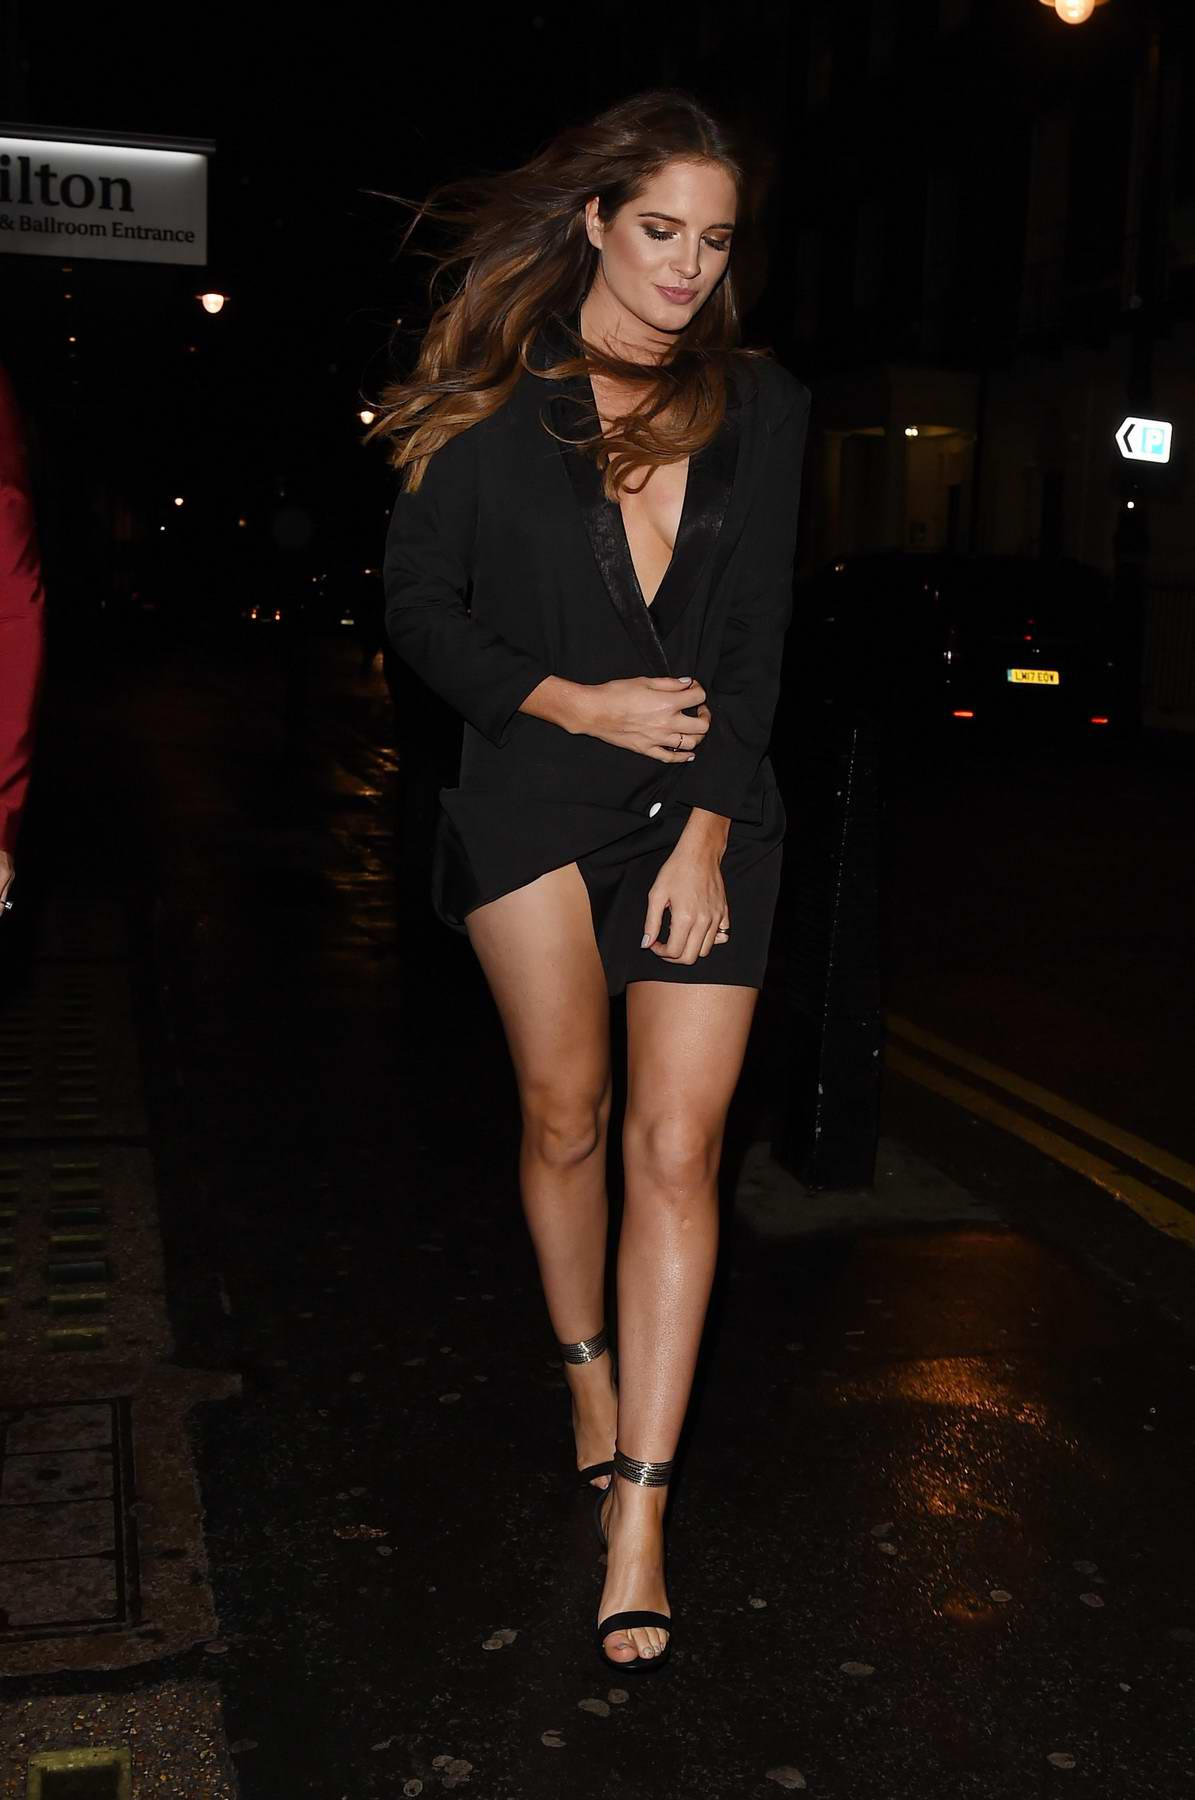 Binky Felstead leaving In The Style photoshoot in London